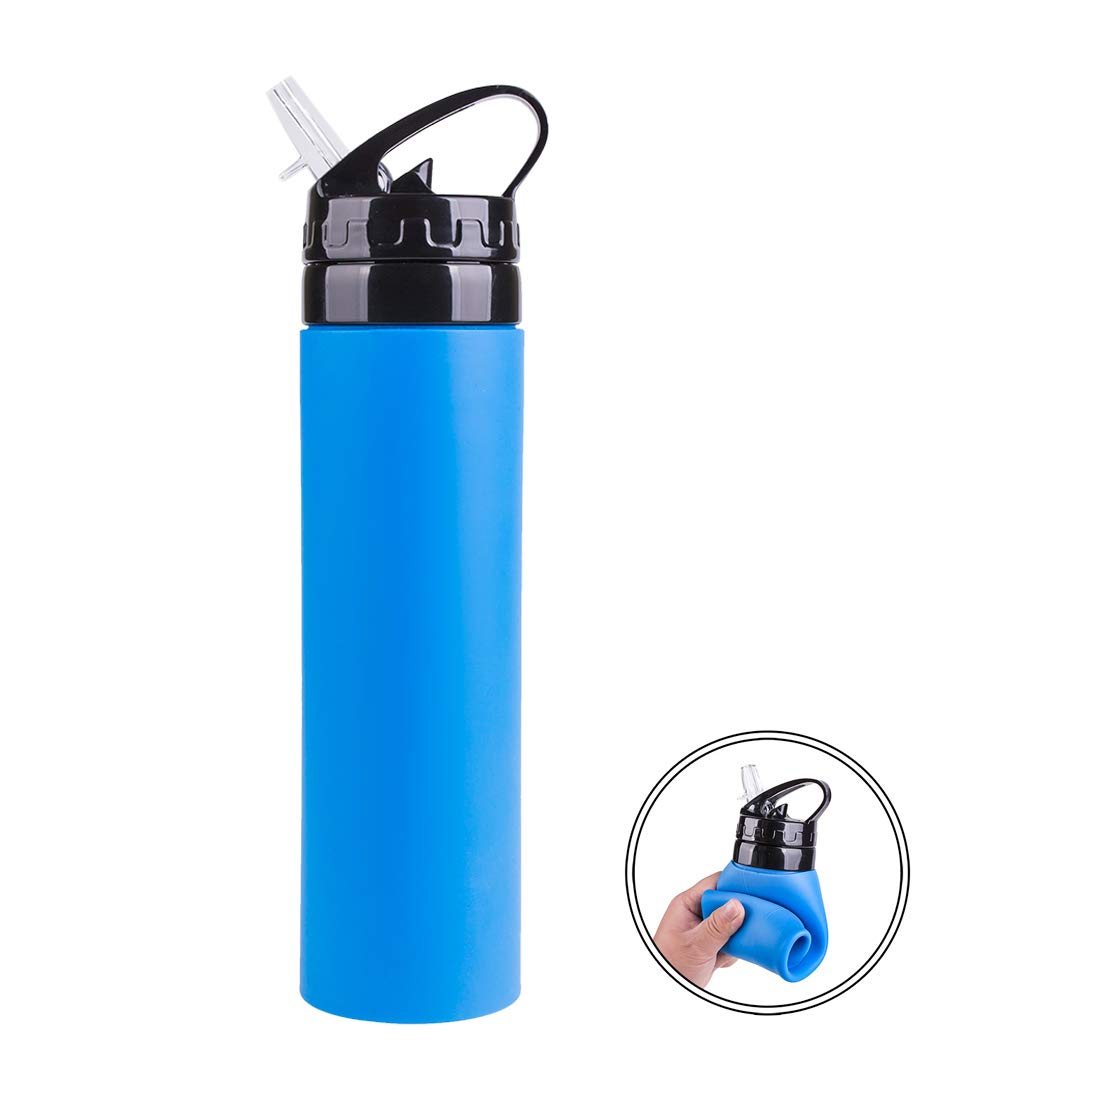 Blue Camping Traveling Leakproof /& Ultralight Annaklin Collapsible Water Bottle Silicone Foldable 20.3 oz Biking Water Bottle for Sports /& Outdoor Hiking Roll Up to Save Space